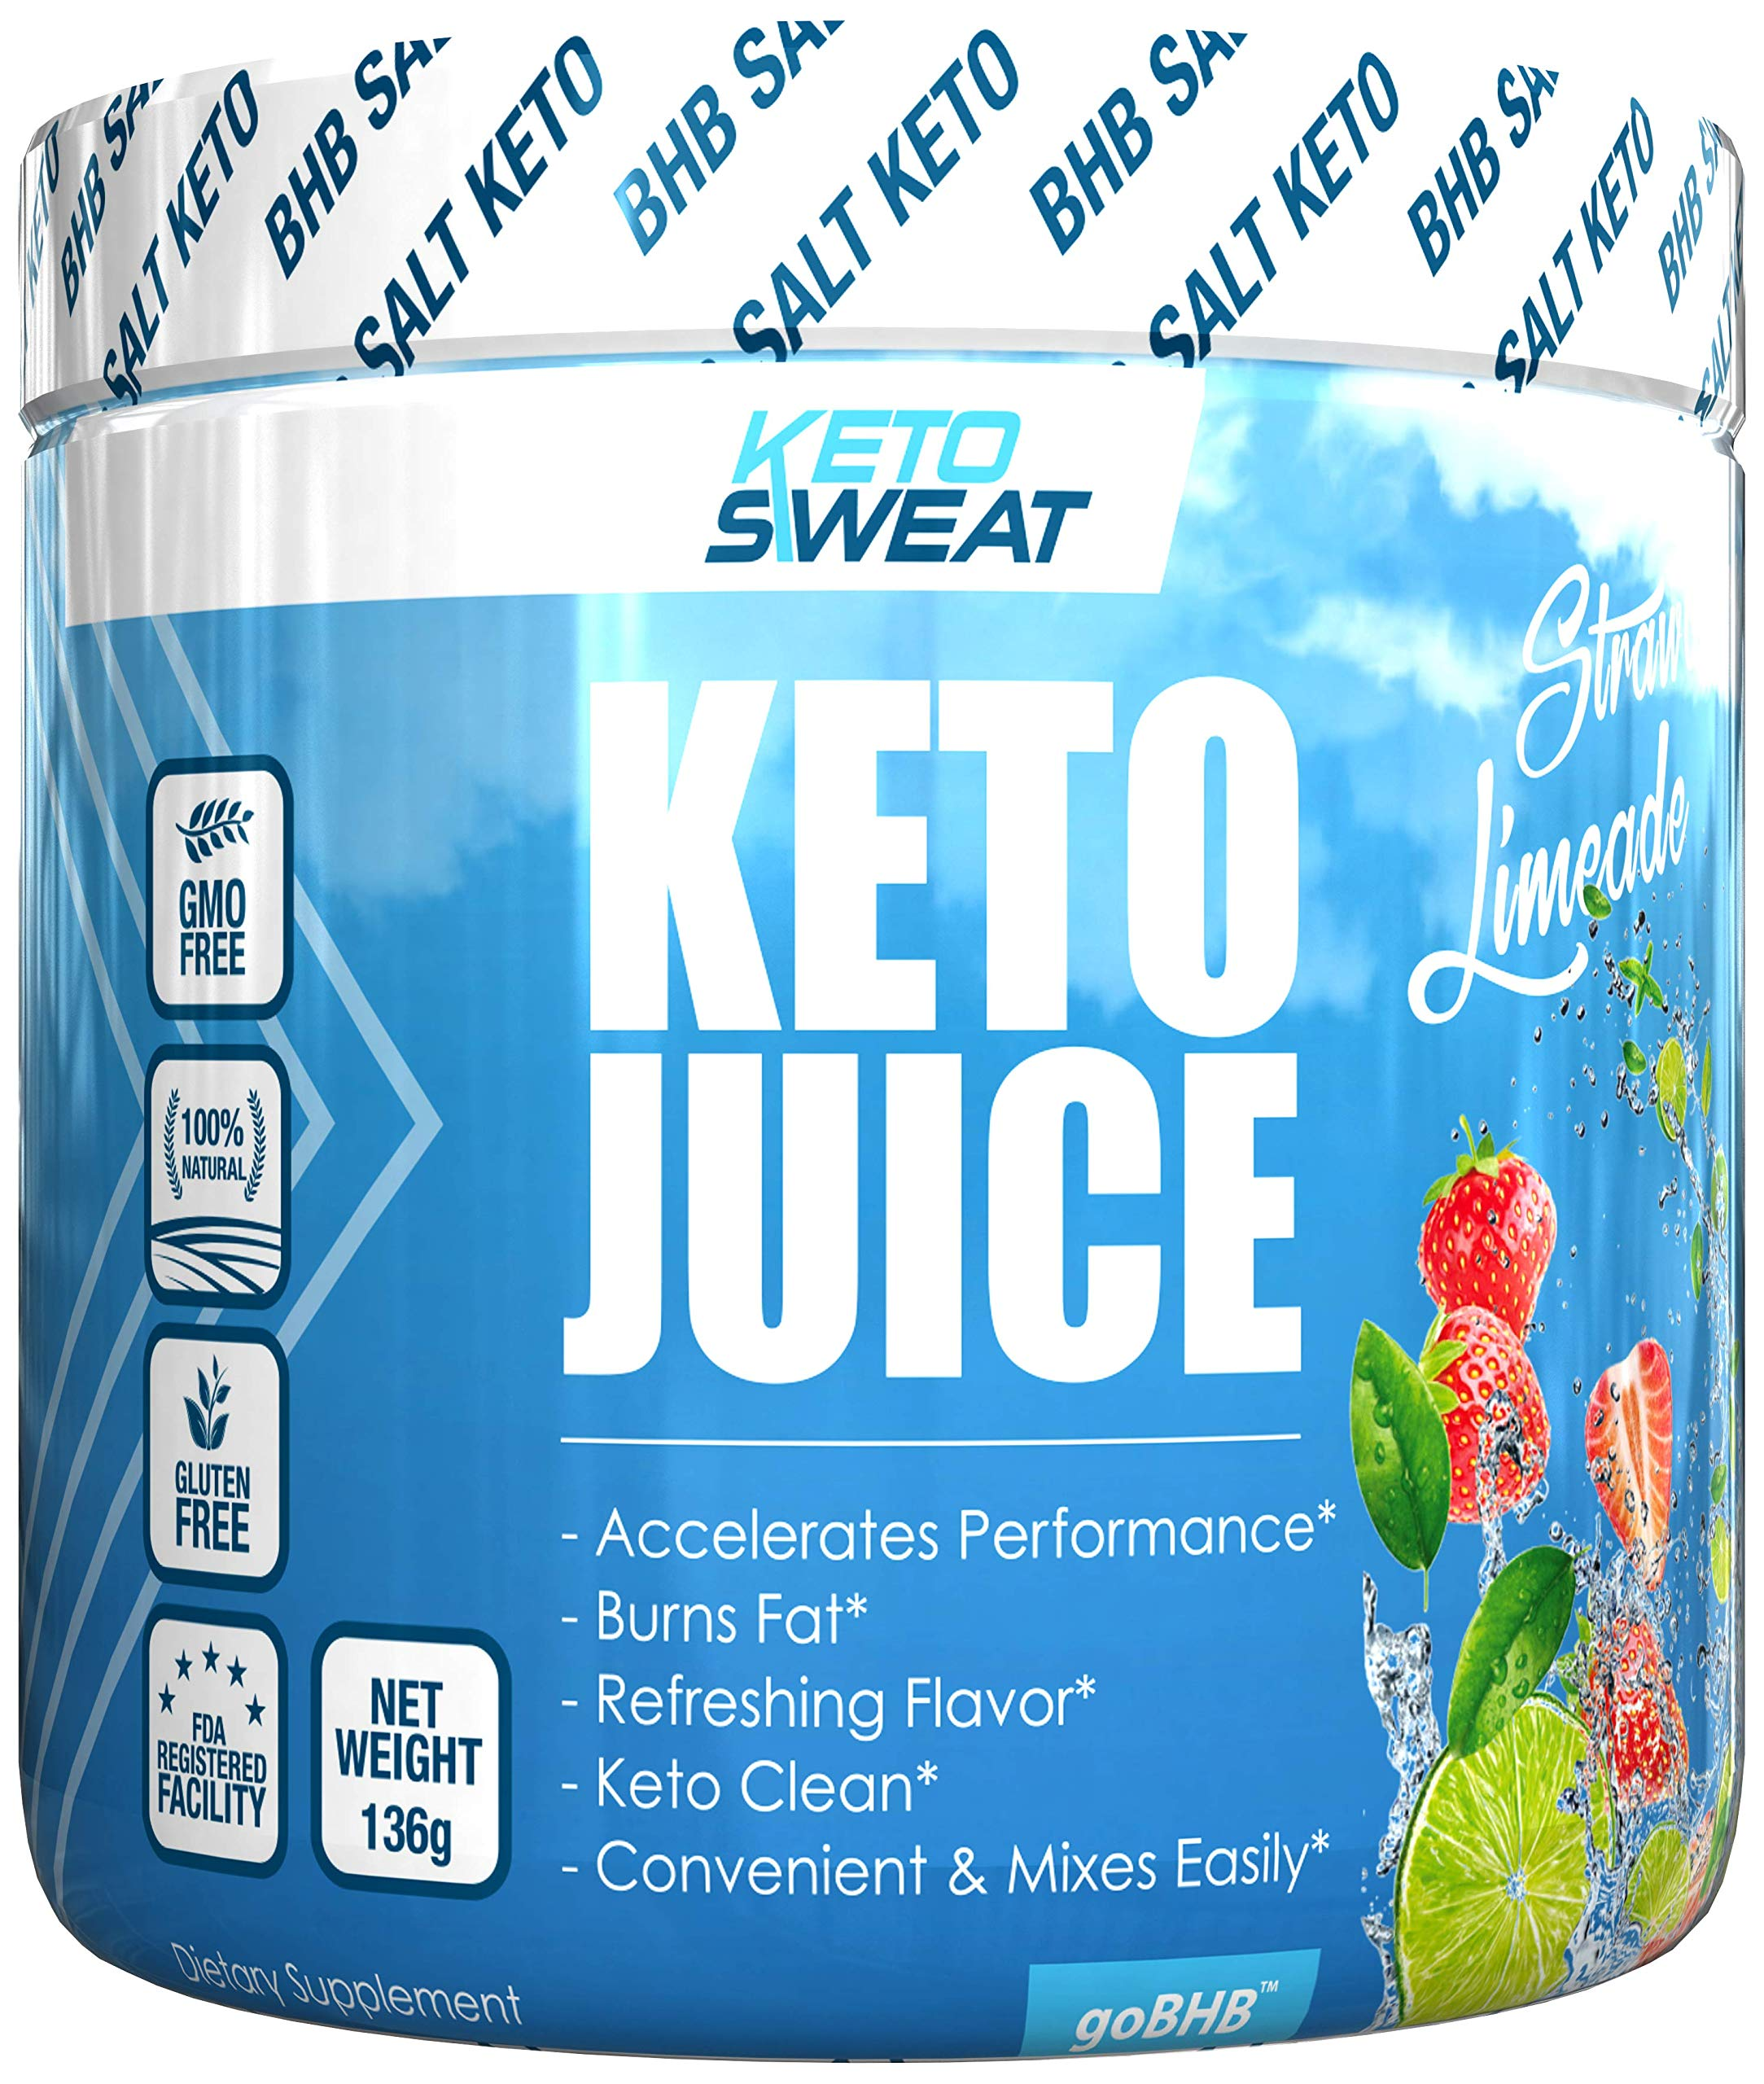 Keto Juice BHB Salts - Exogenous Ketone Performance Complex - Formulated for Ketosis, Energy, Focus and Fat Burn - Patented Beta-Hydroxybutyrates (Calcium, Sodium, Magnesium) - 11g- Strawberry Limeade